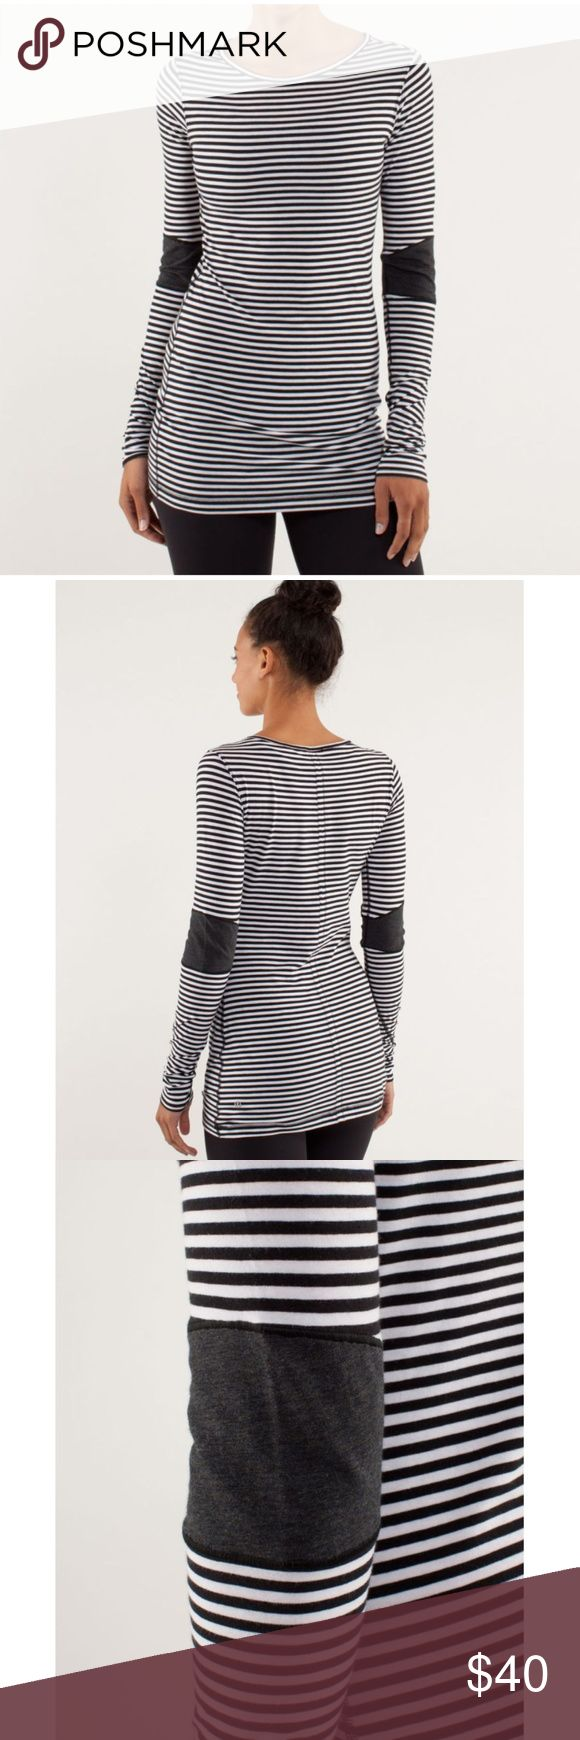 """Lululemon Devotion Classic Stripe Black White Top PRICE IS FIRM AND NON-NEGOTIABLE. NO OFFERS. LOWBALLERS WILL BE BLOCKED. NO TRADES. Lululemon """"Devotion"""" long sleeve top in Classic Stripe Black/White. A soft, light layering piece made with soft and breathable Vitasea fabric. Body-skimming fit. Pre-shrunk. Removable inner tag was taken out, but this is a size 6. lululemon athletica Tops Tees - Long Sleeve"""